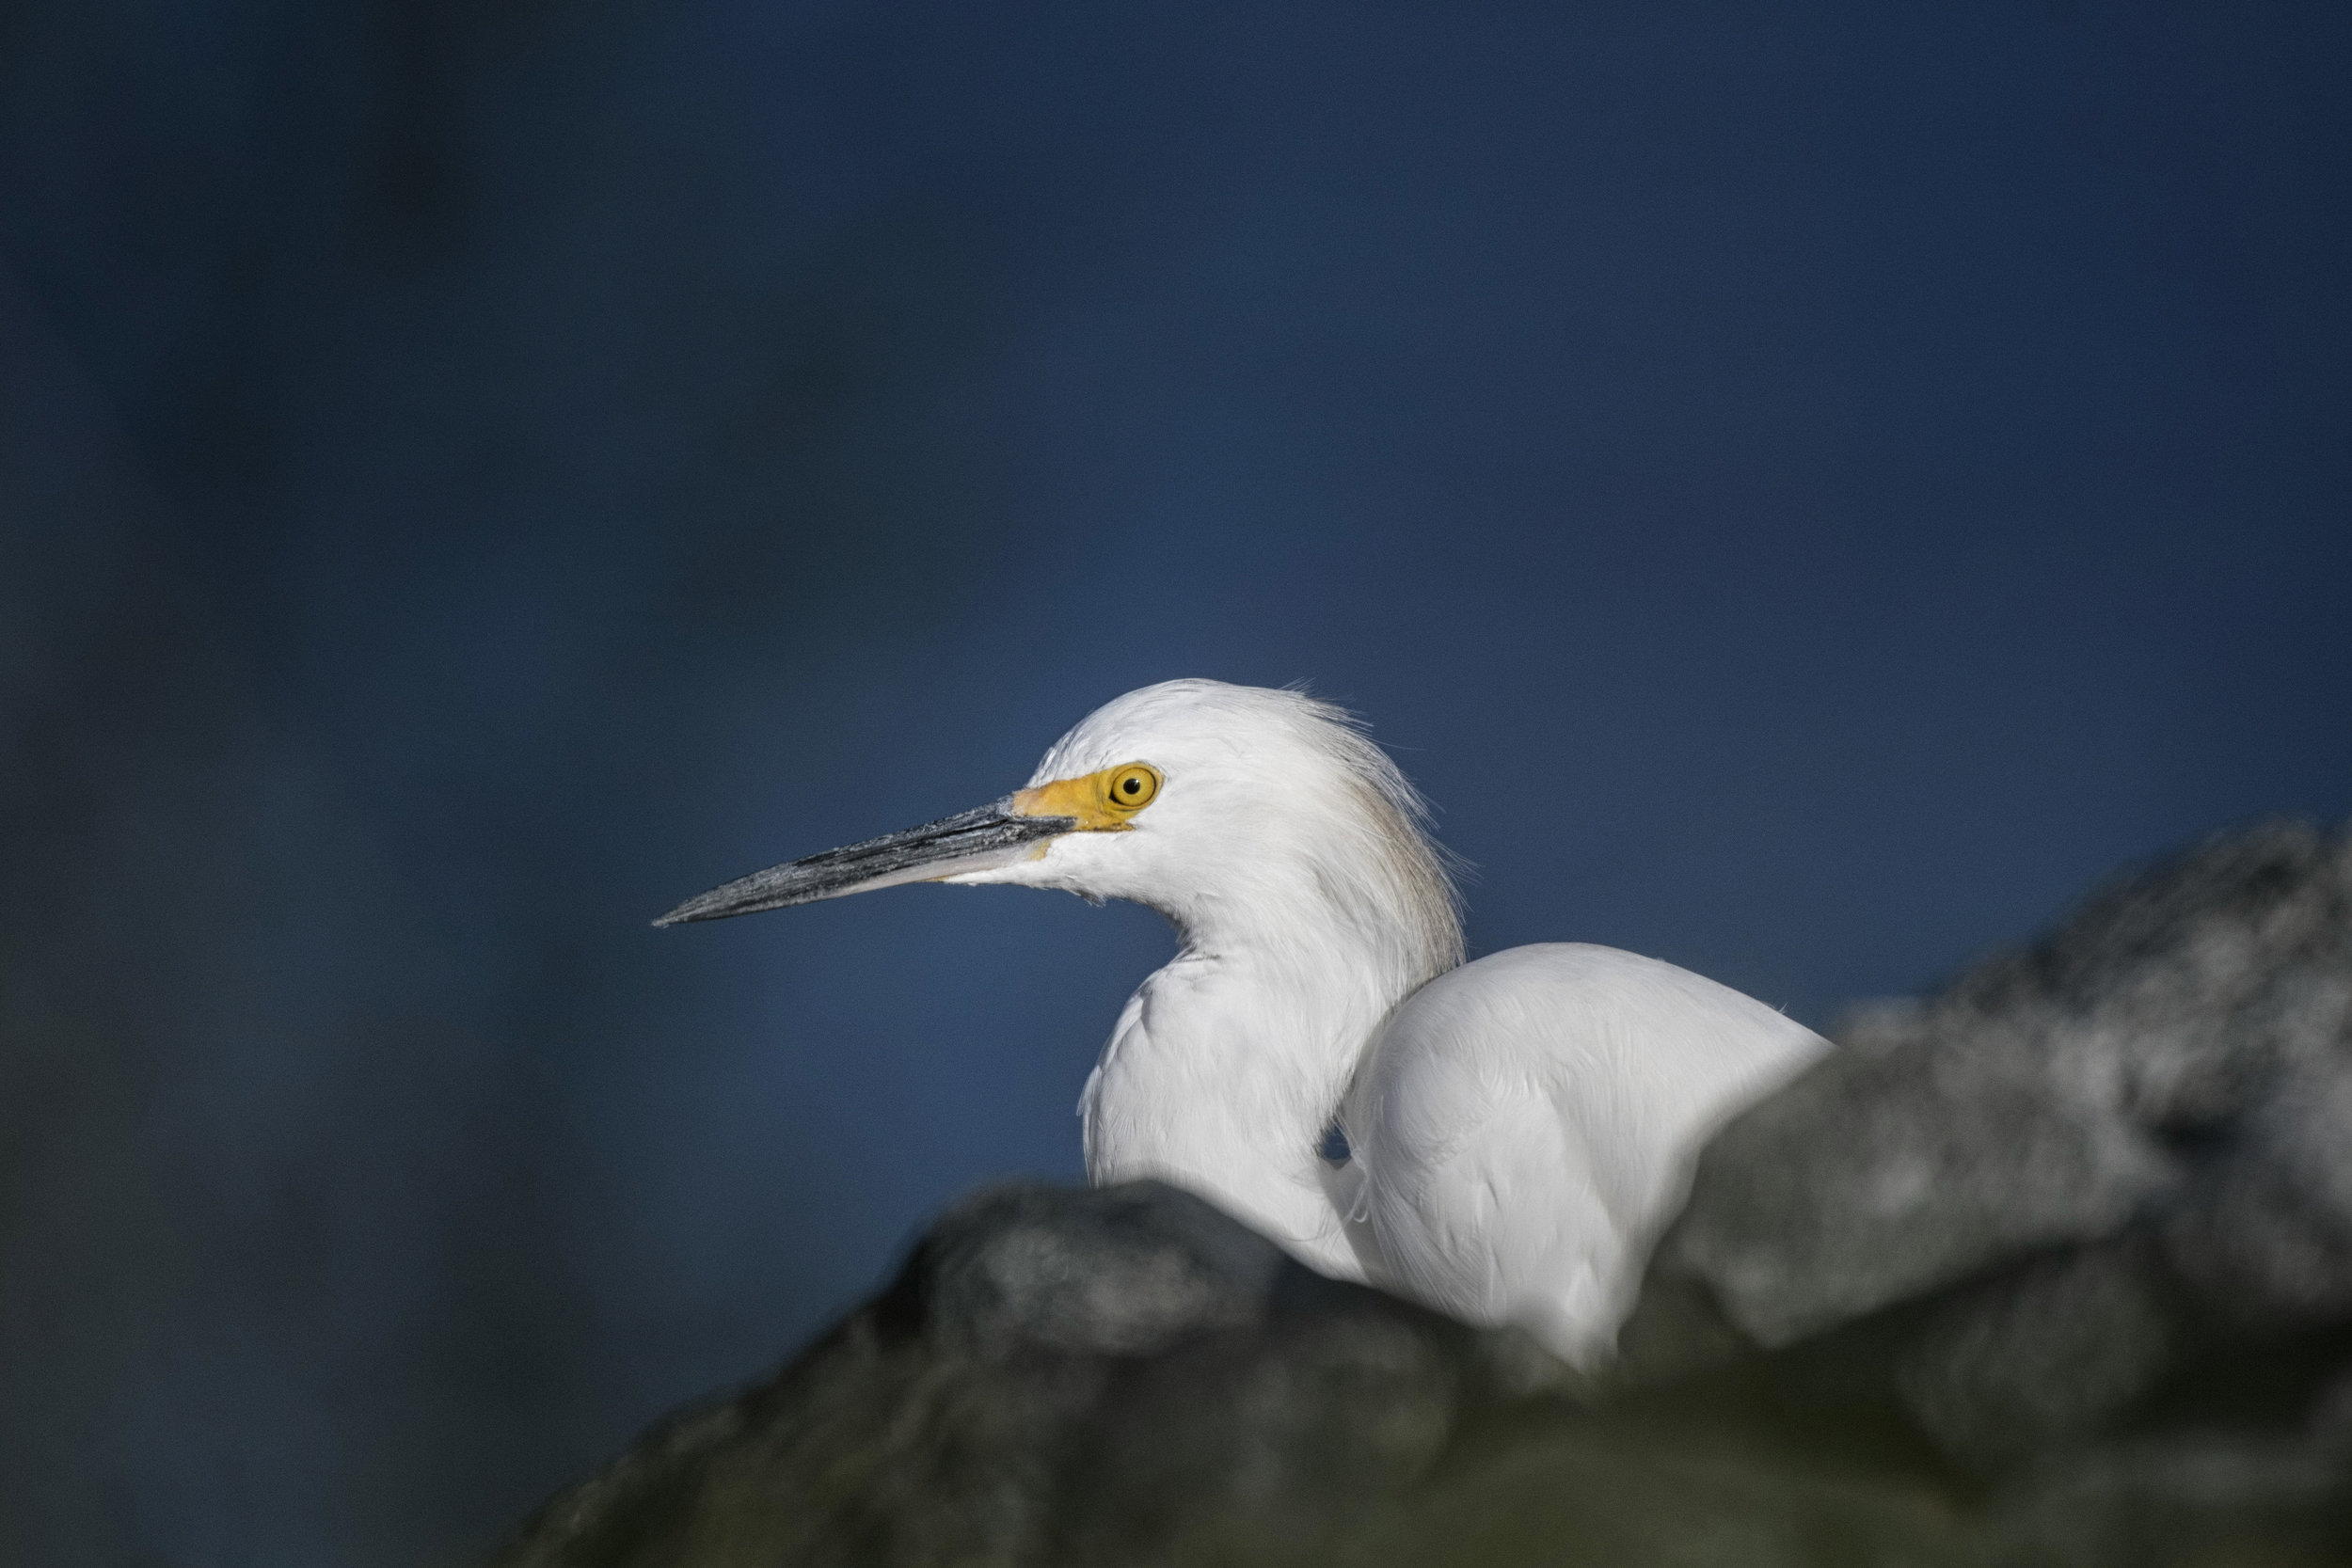 snowy egret at Bombay Hook NWR